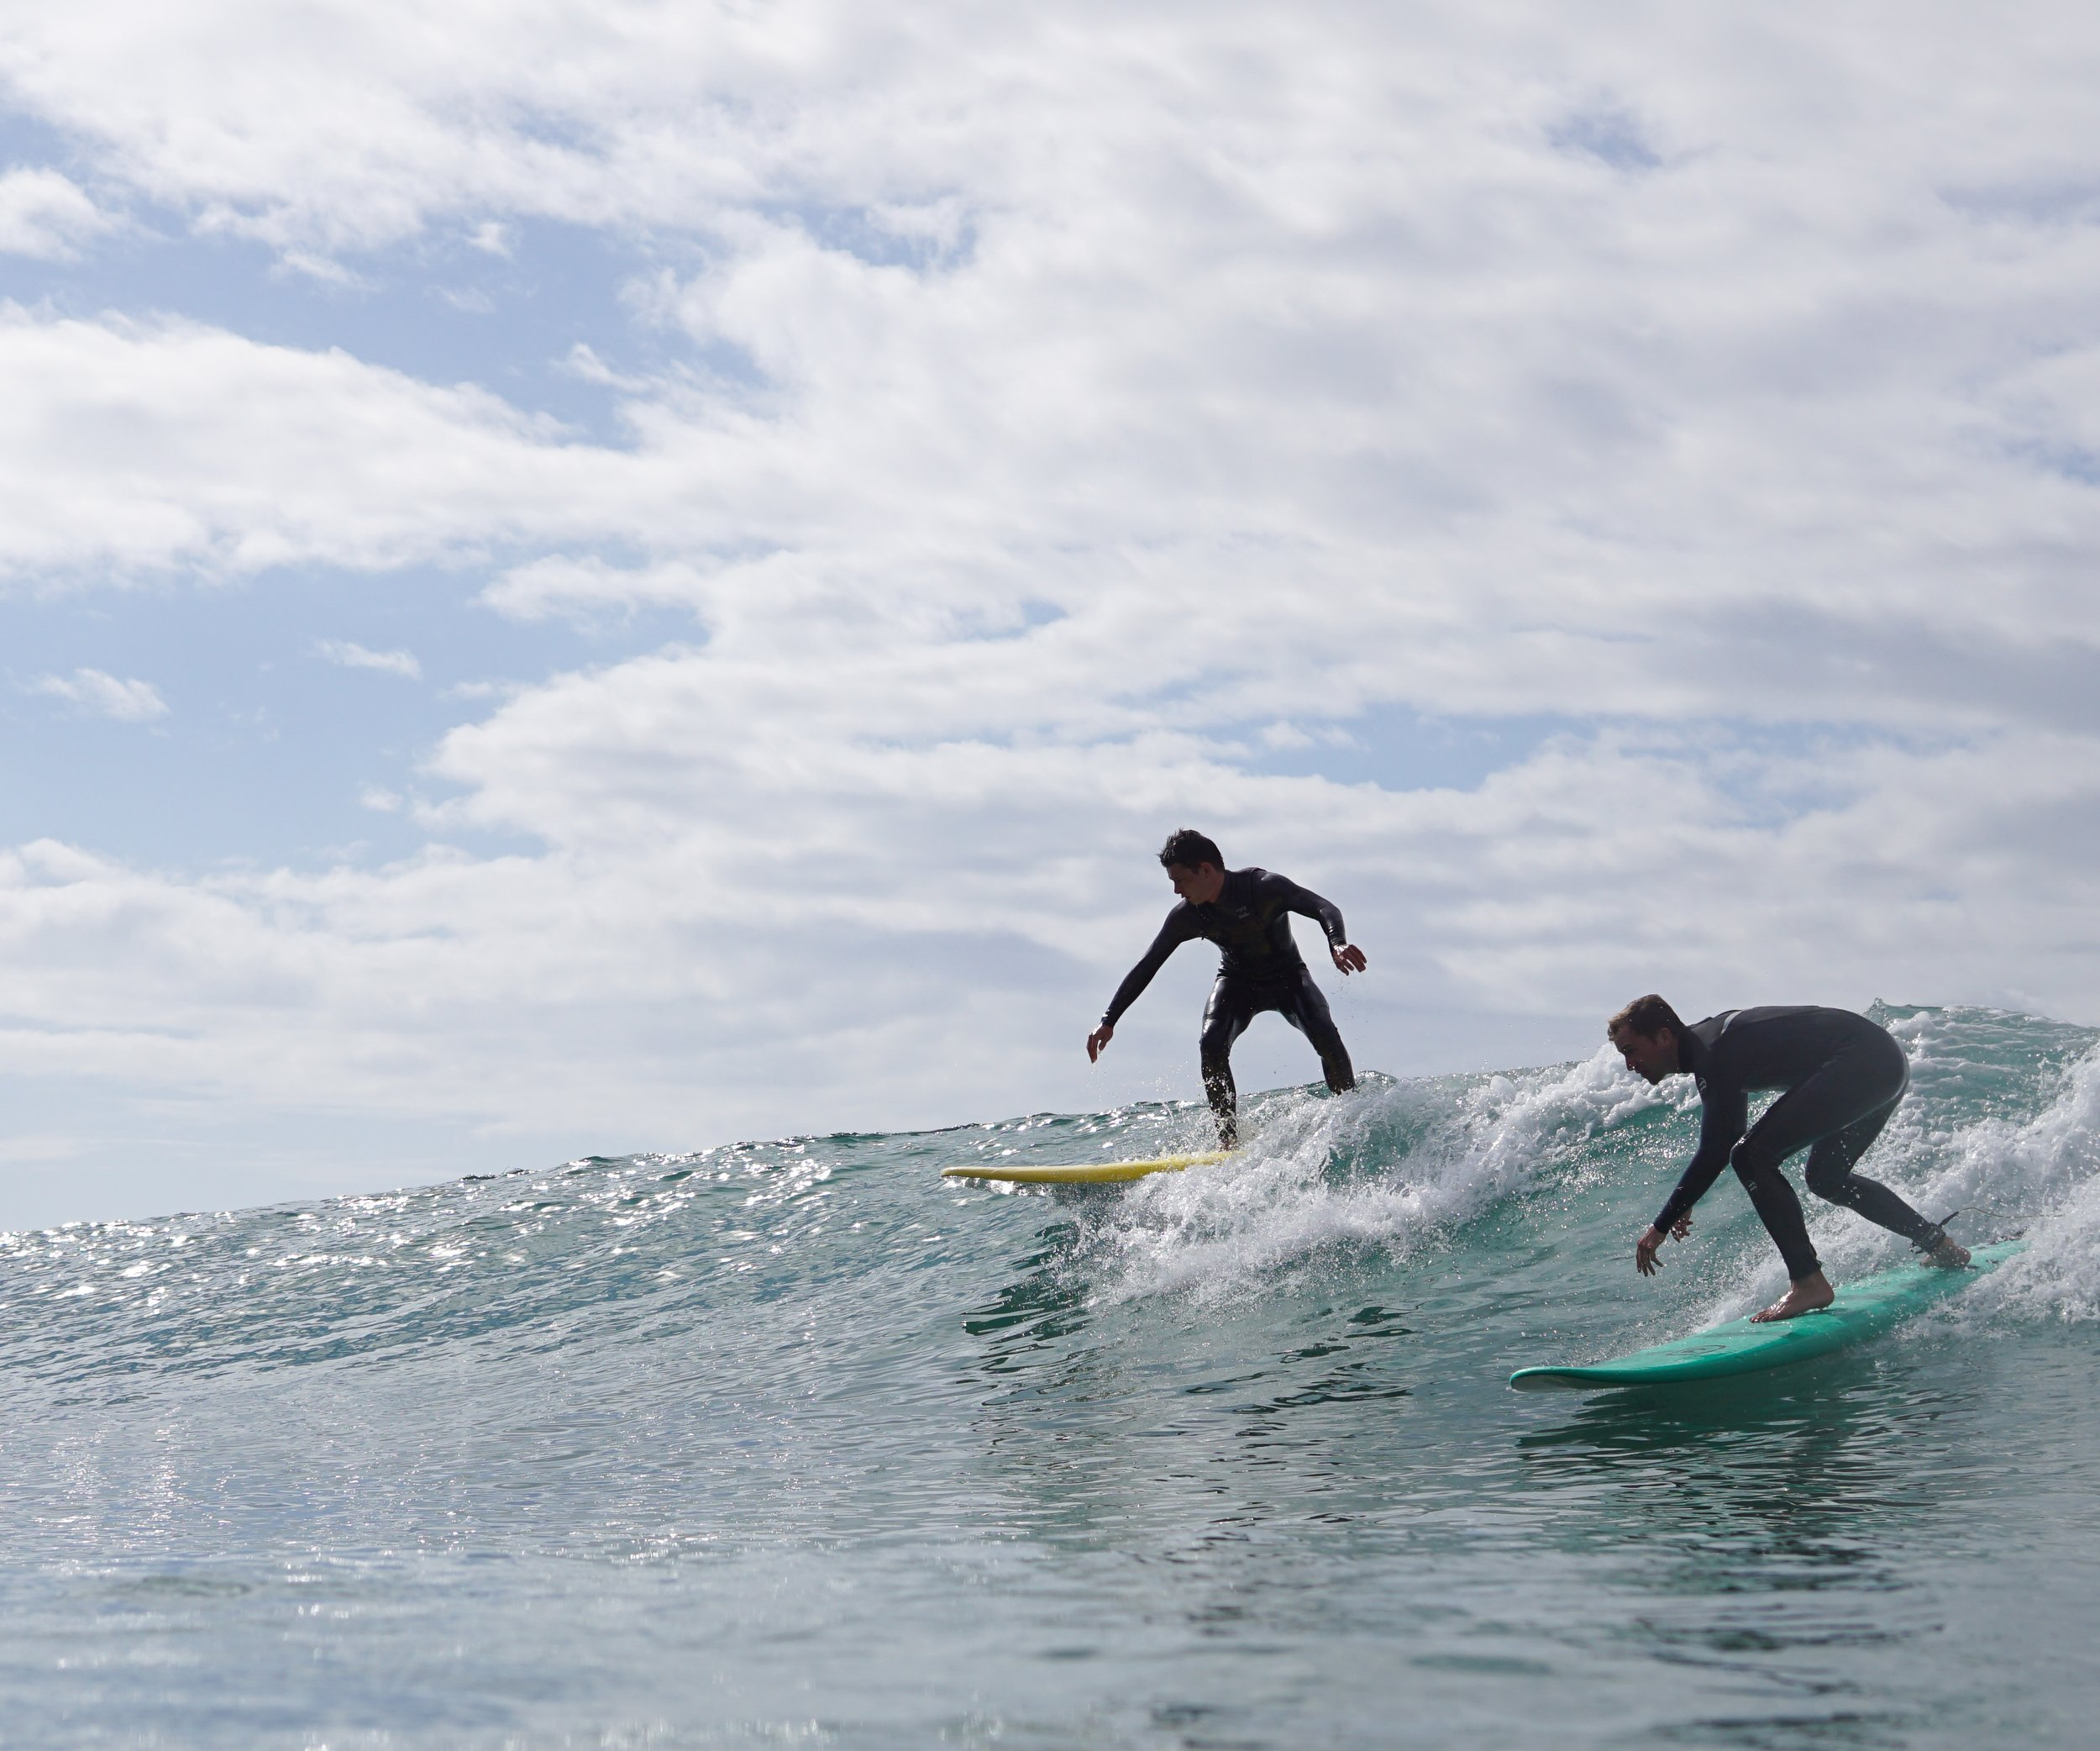 Get in touch - Email: surfcbs@gmail.comFacebook: CBS SurfStudent citizenship guidelines